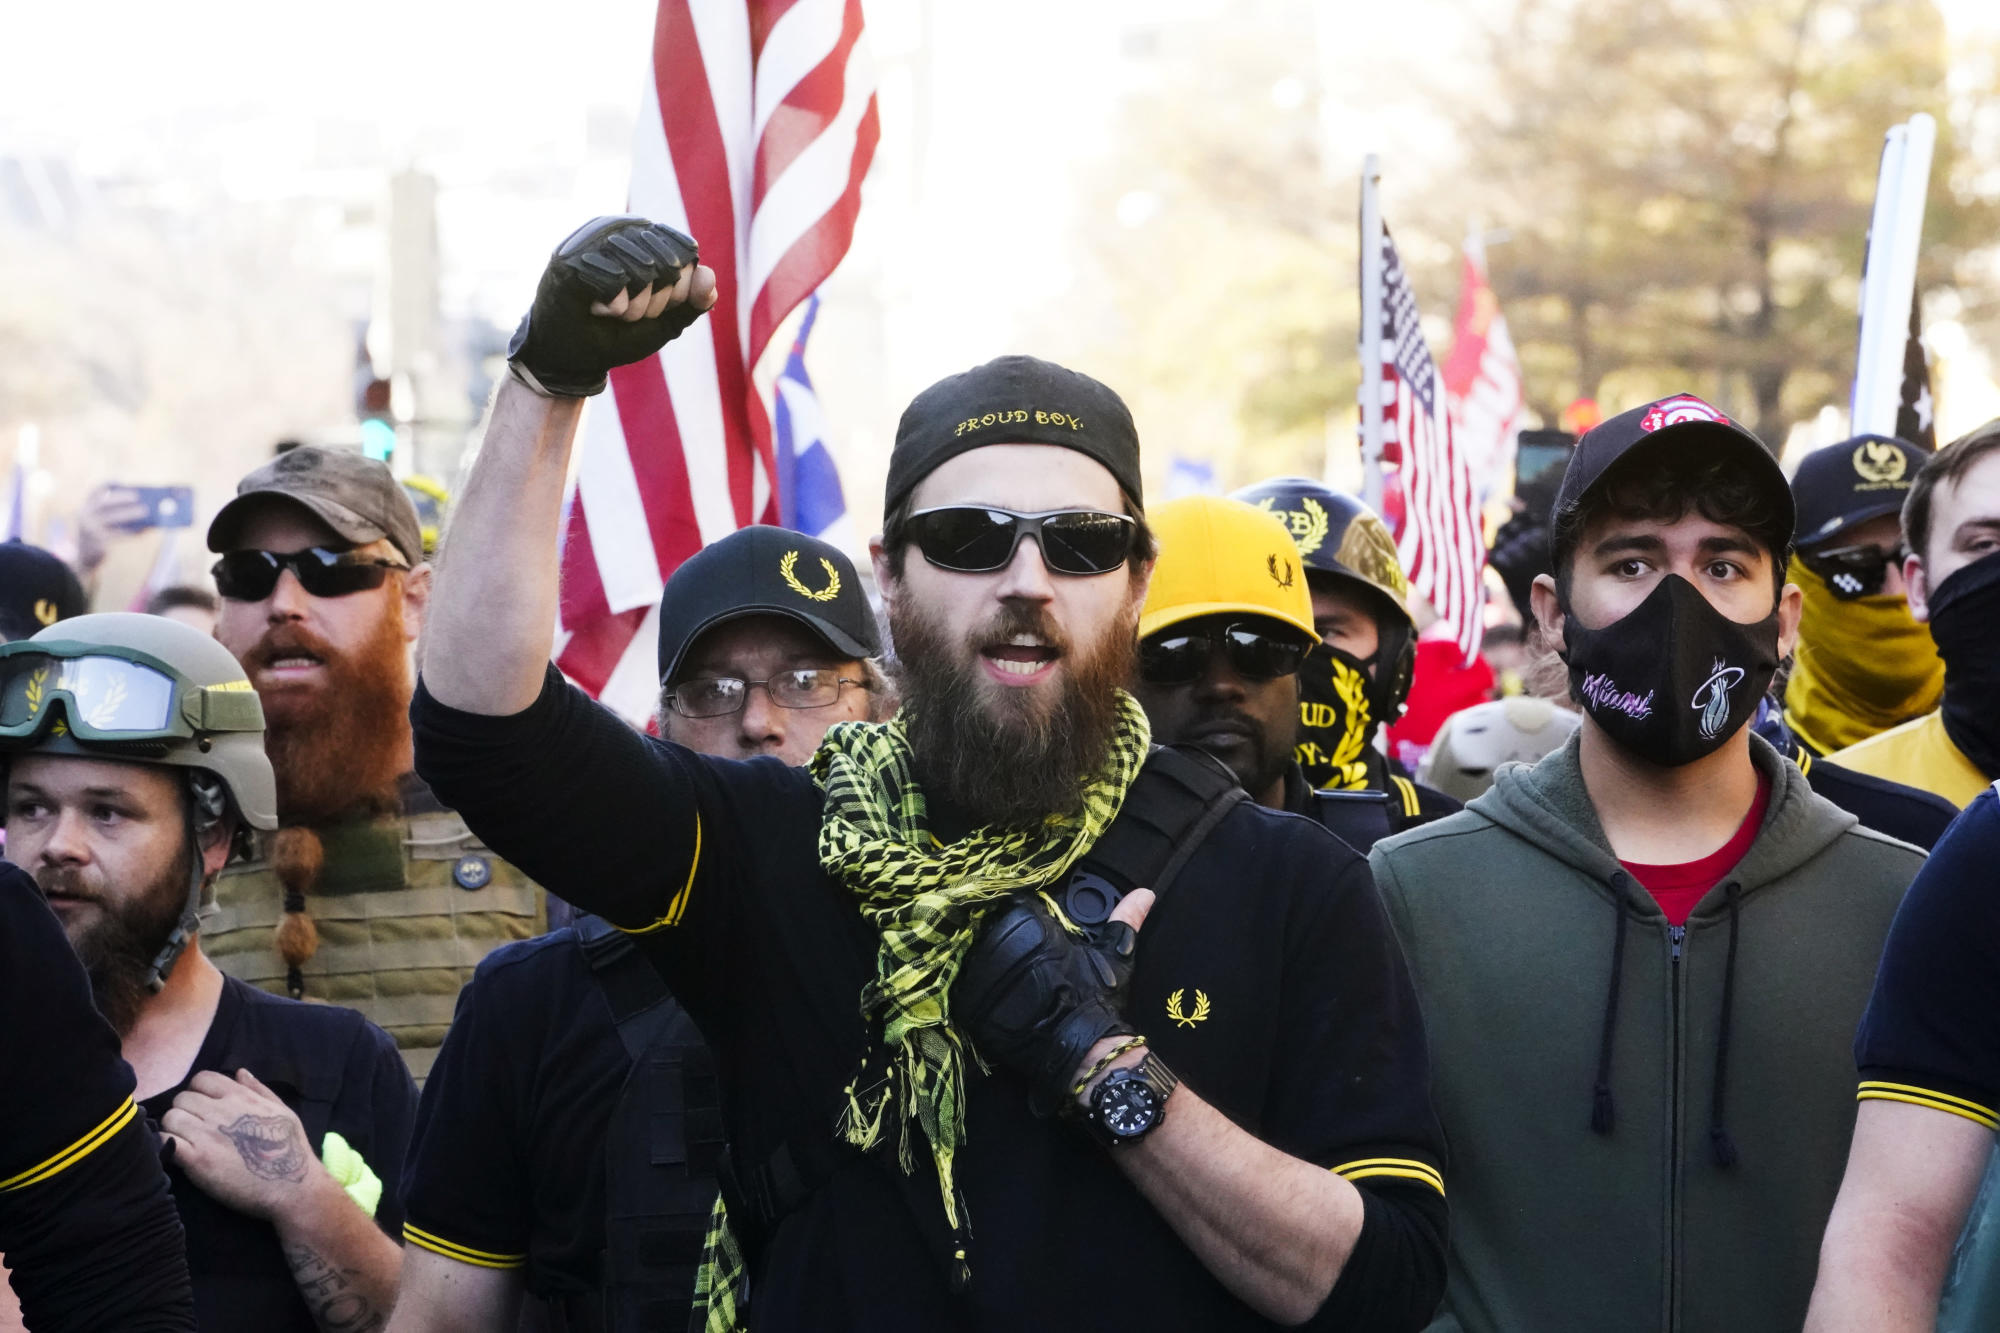 Trump supporters morning protests turn into violent clashes